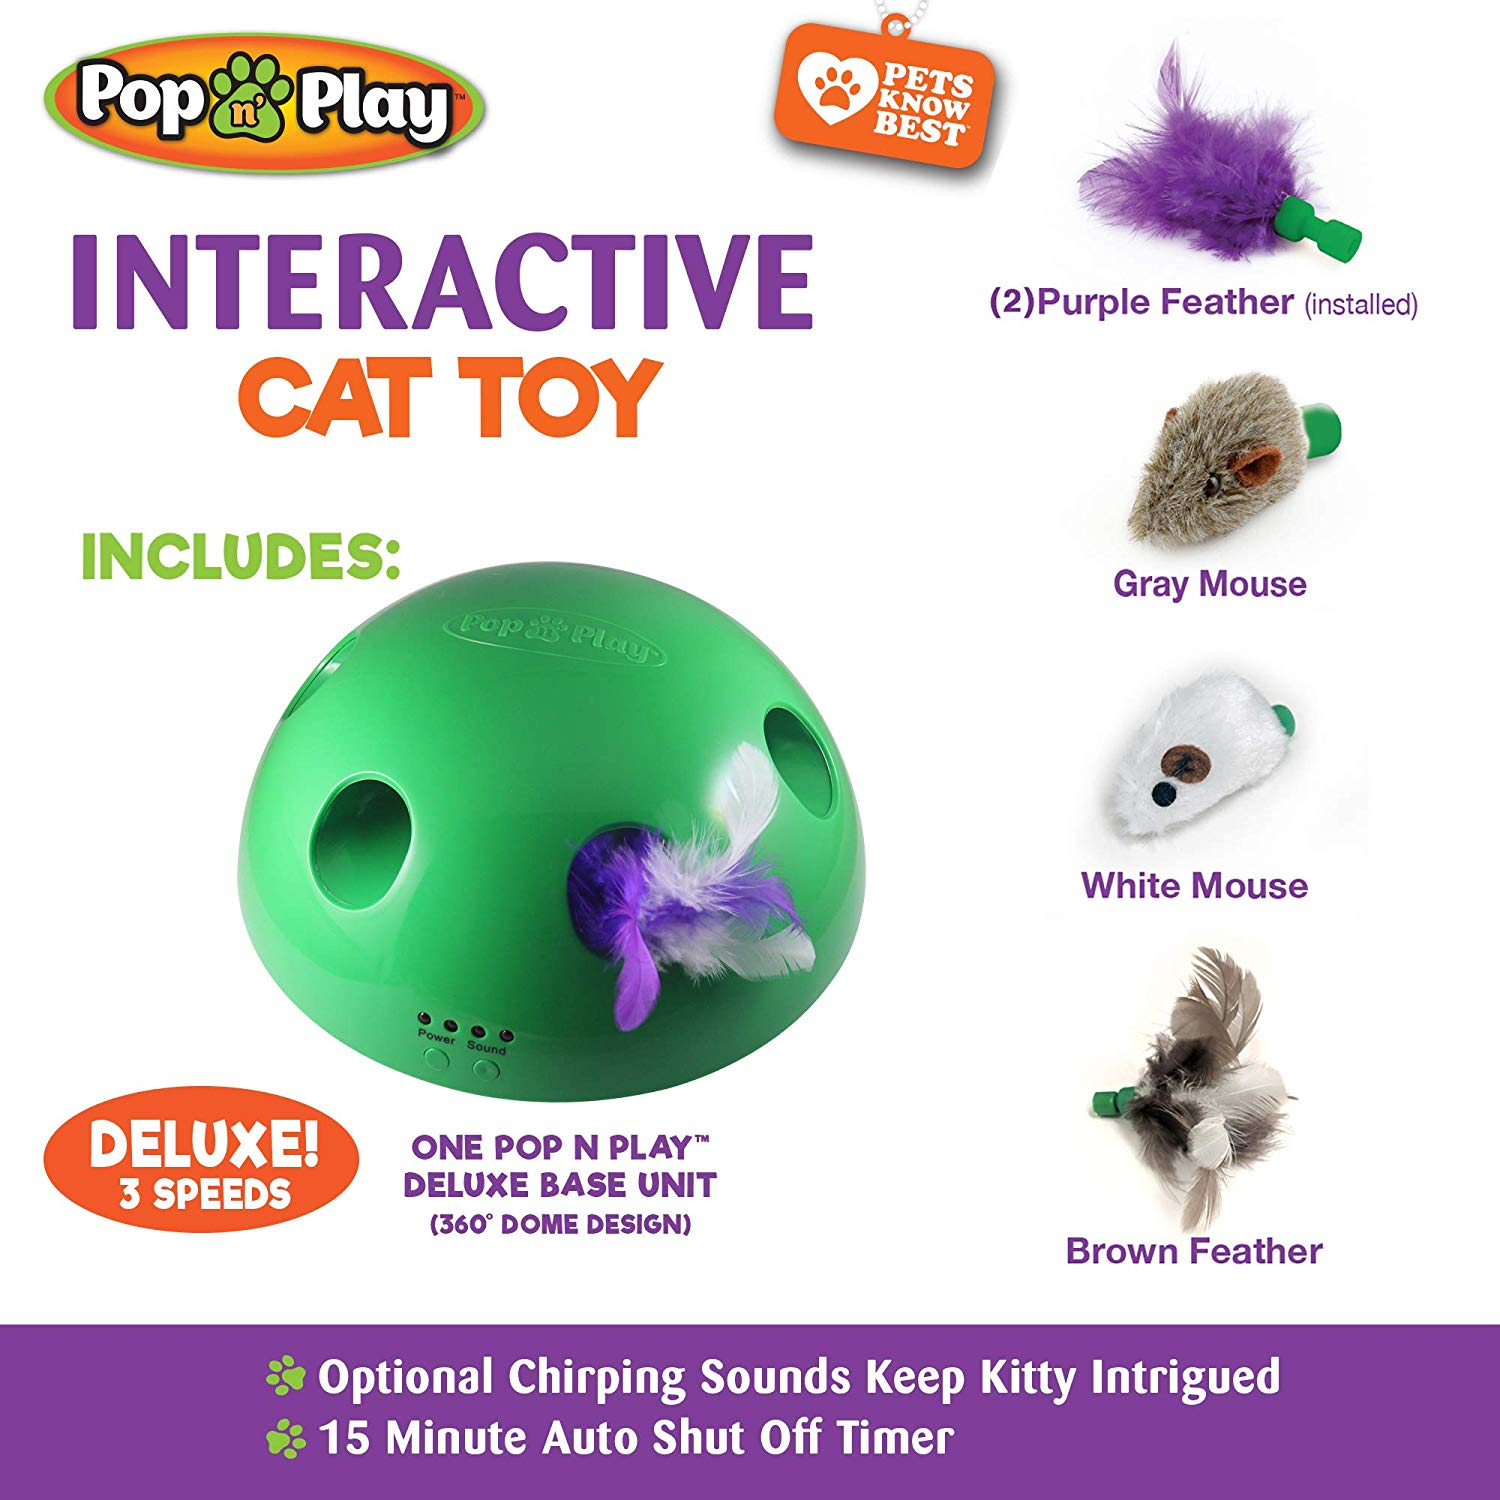 #13 Moving Pop n Play interactive Cat Toy